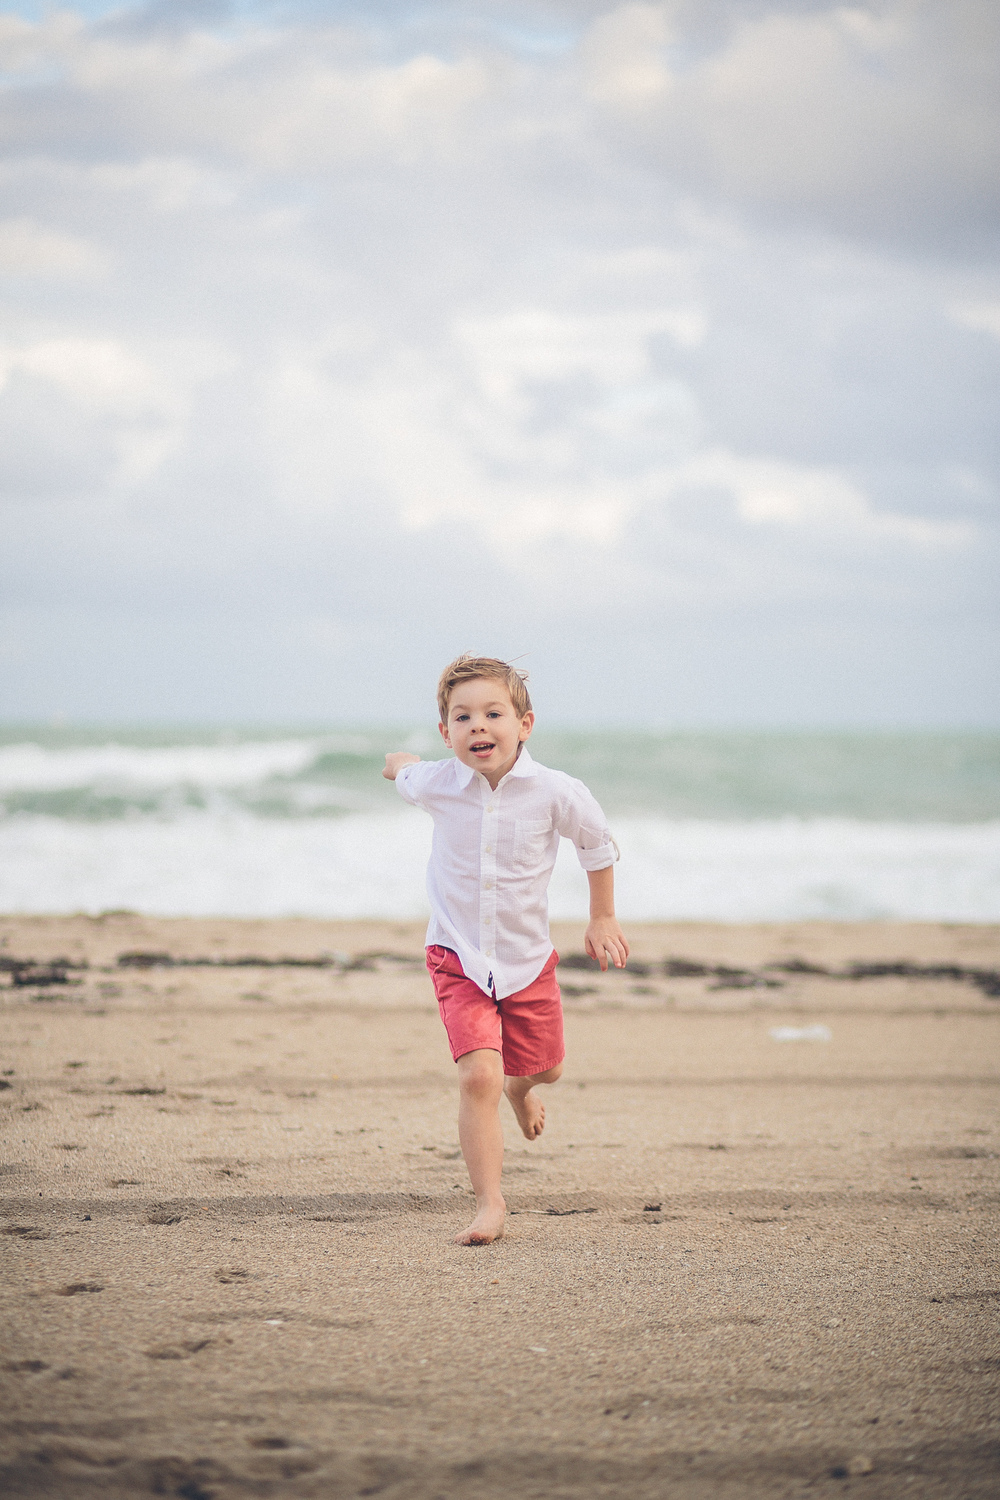 FLYTOGRAPHER | Your Vacation Photographer in Miami - Daniel